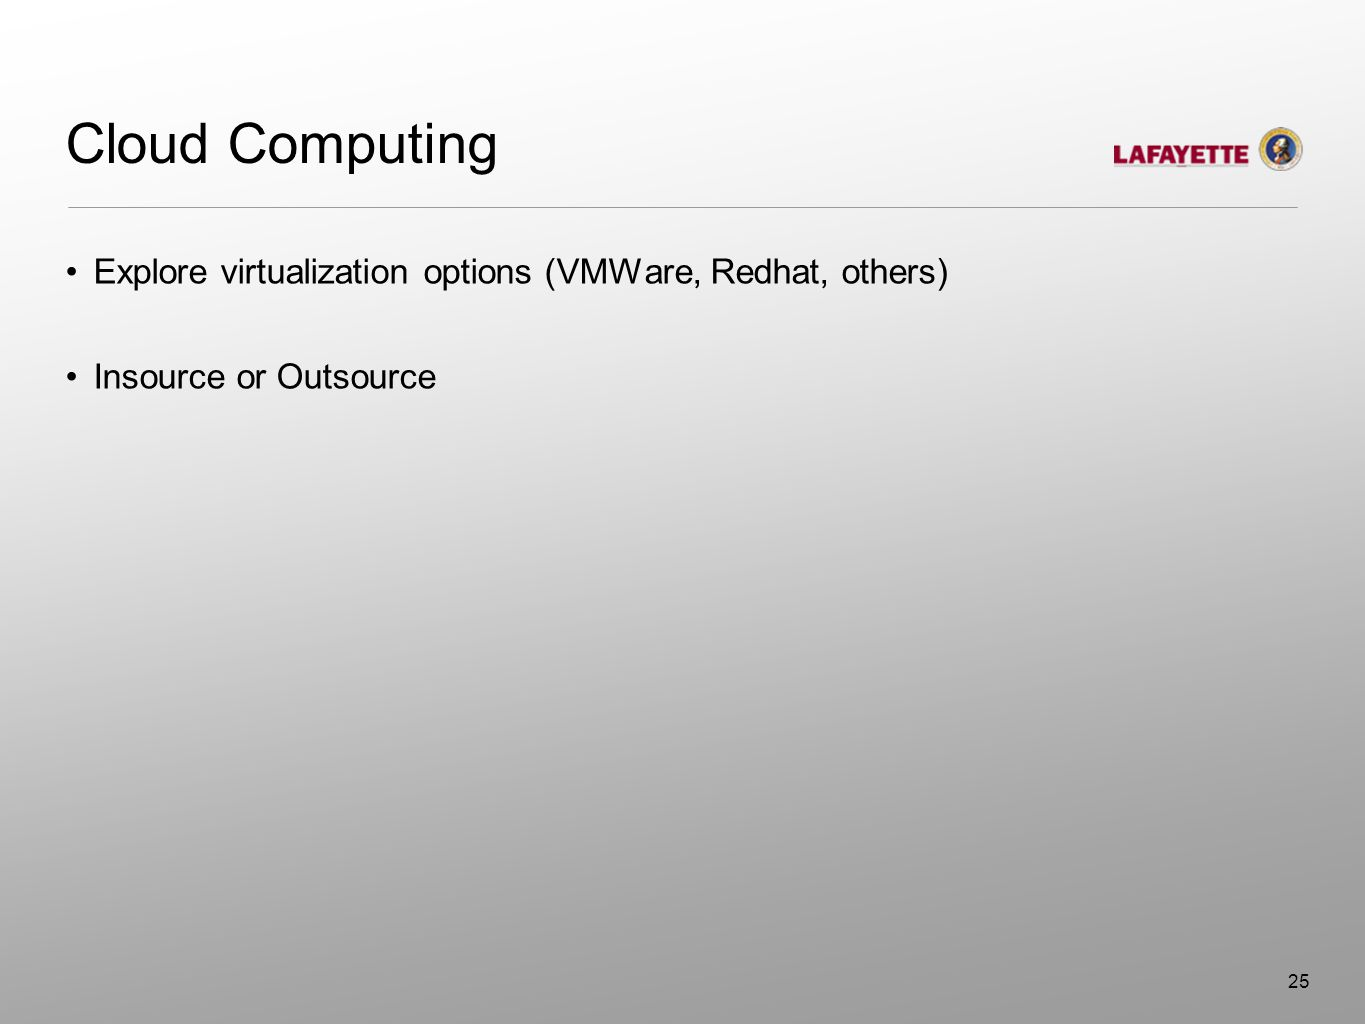 Cloud Computing Explore virtualization options (VMWare, Redhat, others) Insource or Outsource 25